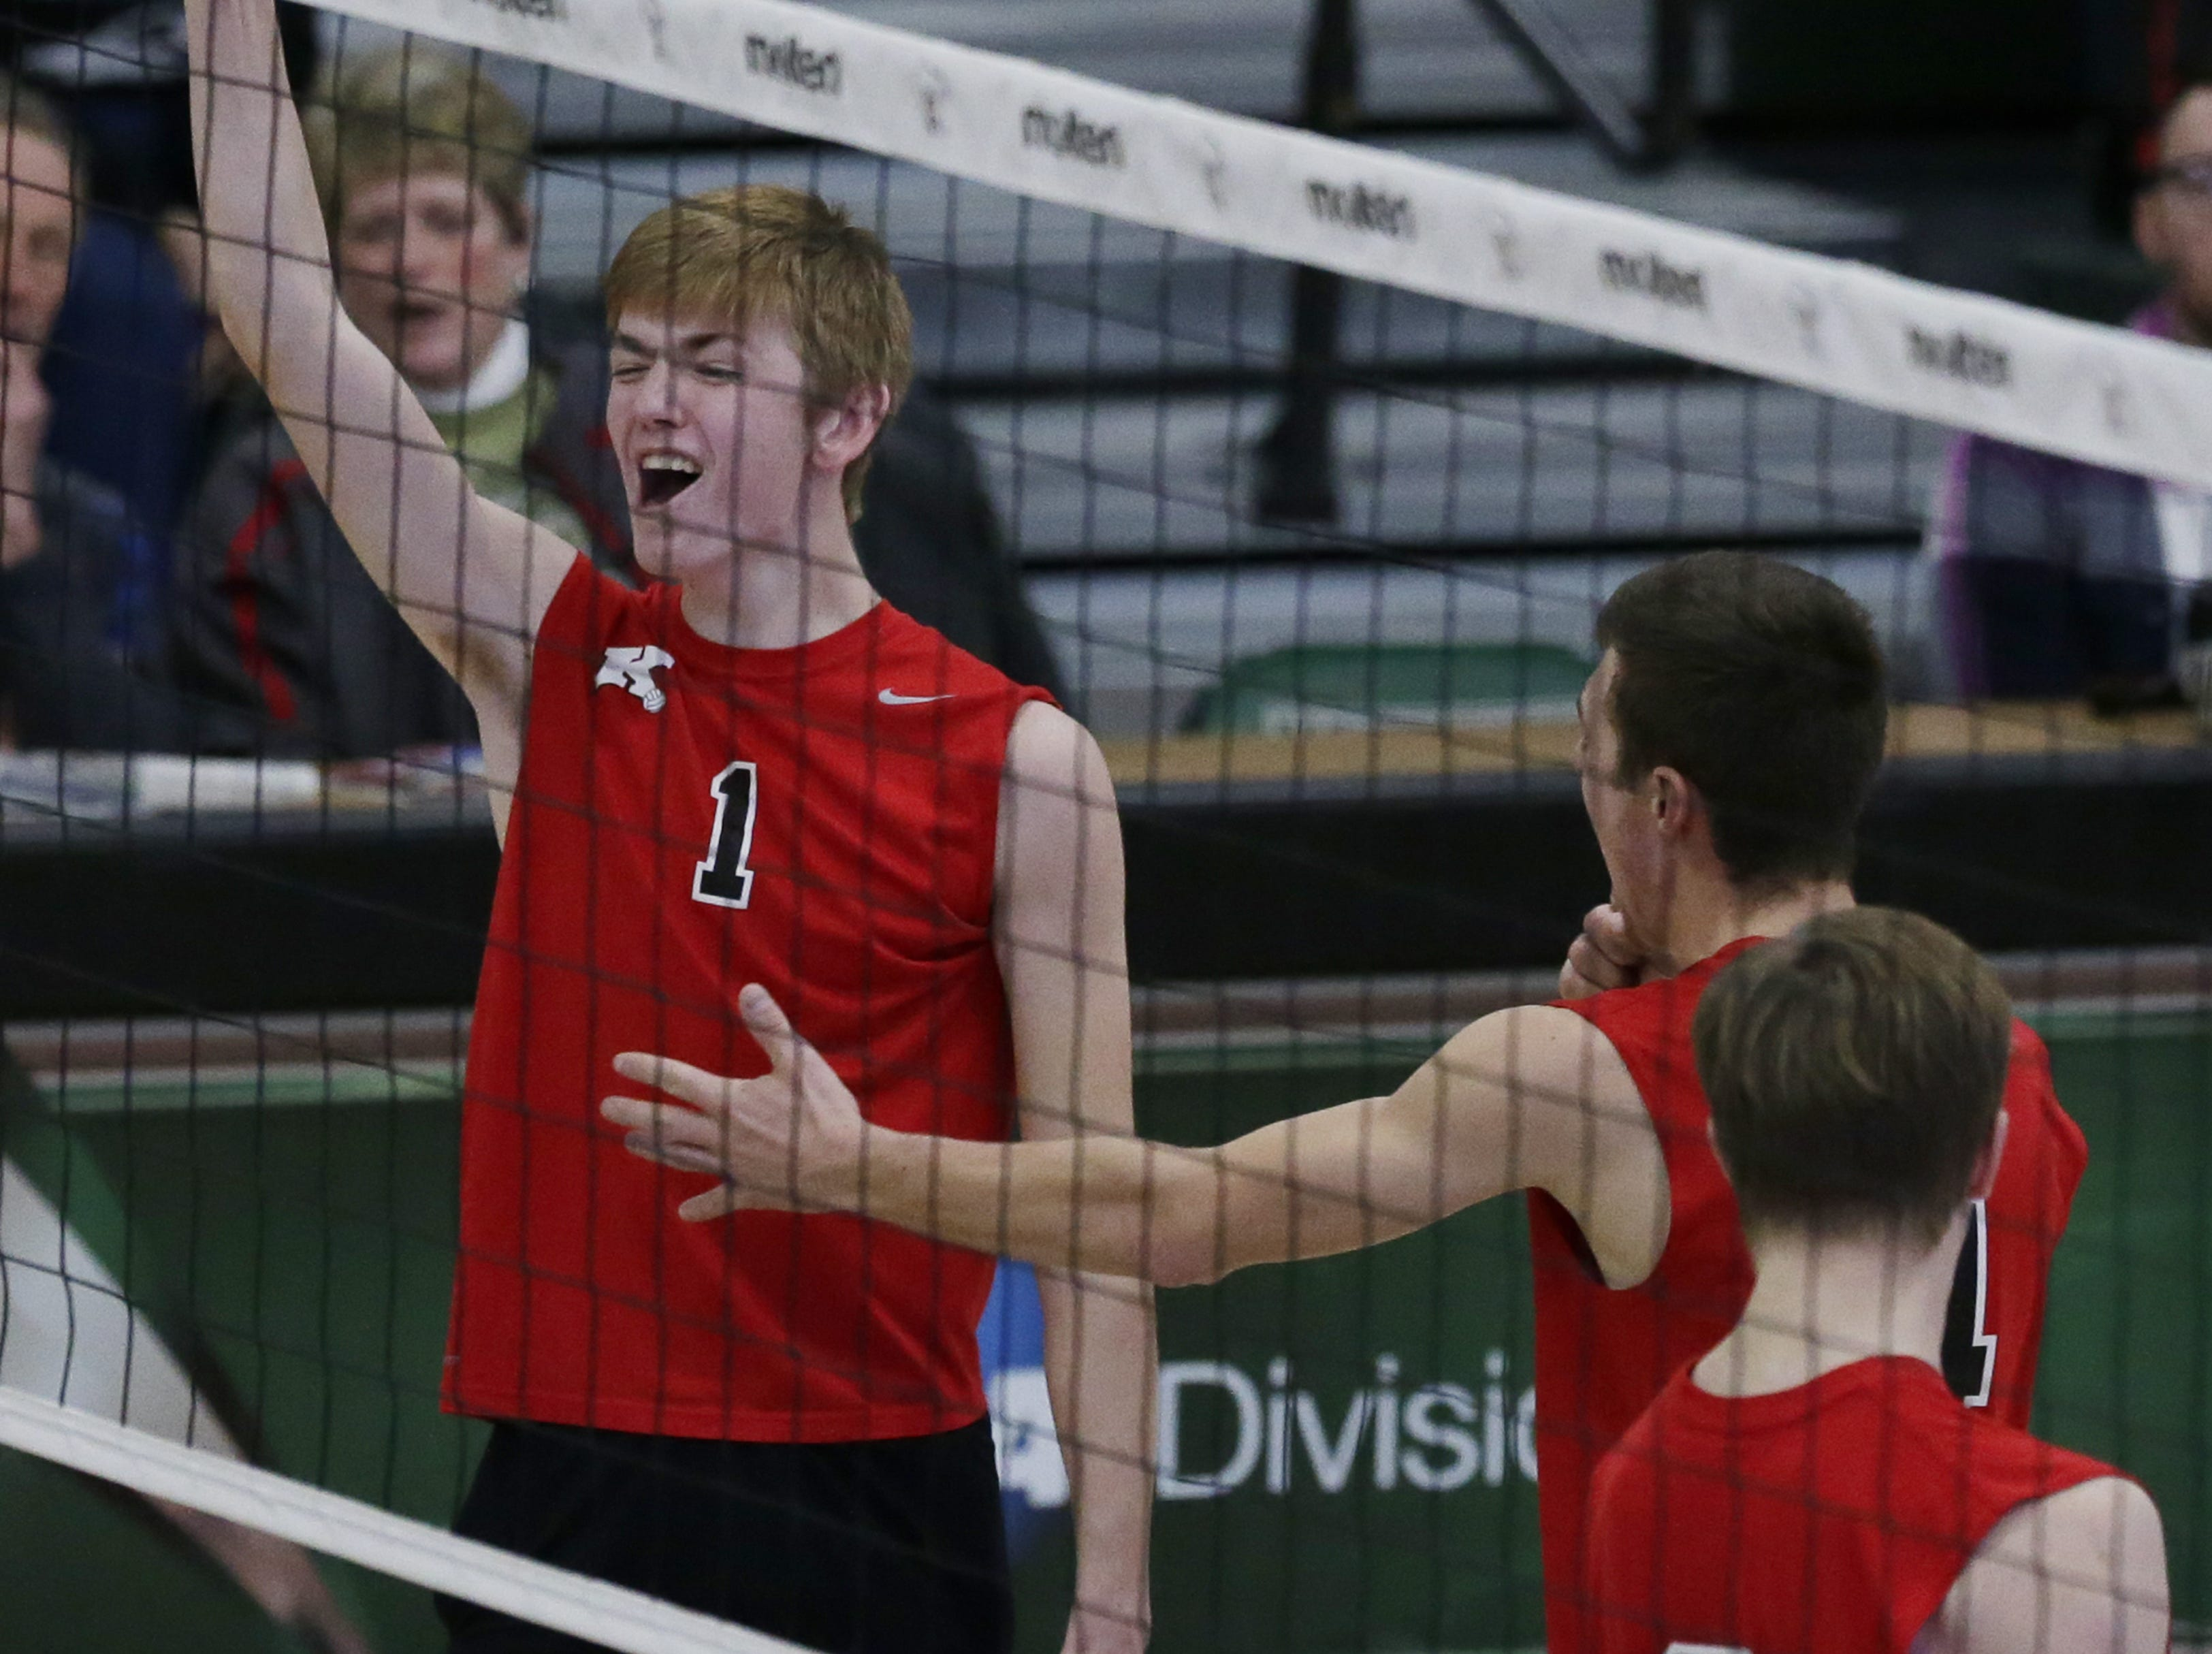 Kimberly's Spencer Herman reacts to a point during their game.  Kimberly Papermakers played Kenosha Indian Trail Hawks in Division 1 WIAA boys volleyball playoff semi-final, Saturday, November 10, 2018 at Wisconsin Lutheran College in Milwaukee, Wis. Joe Sienkiewicz/USA Today NETWORK-Wisconsin